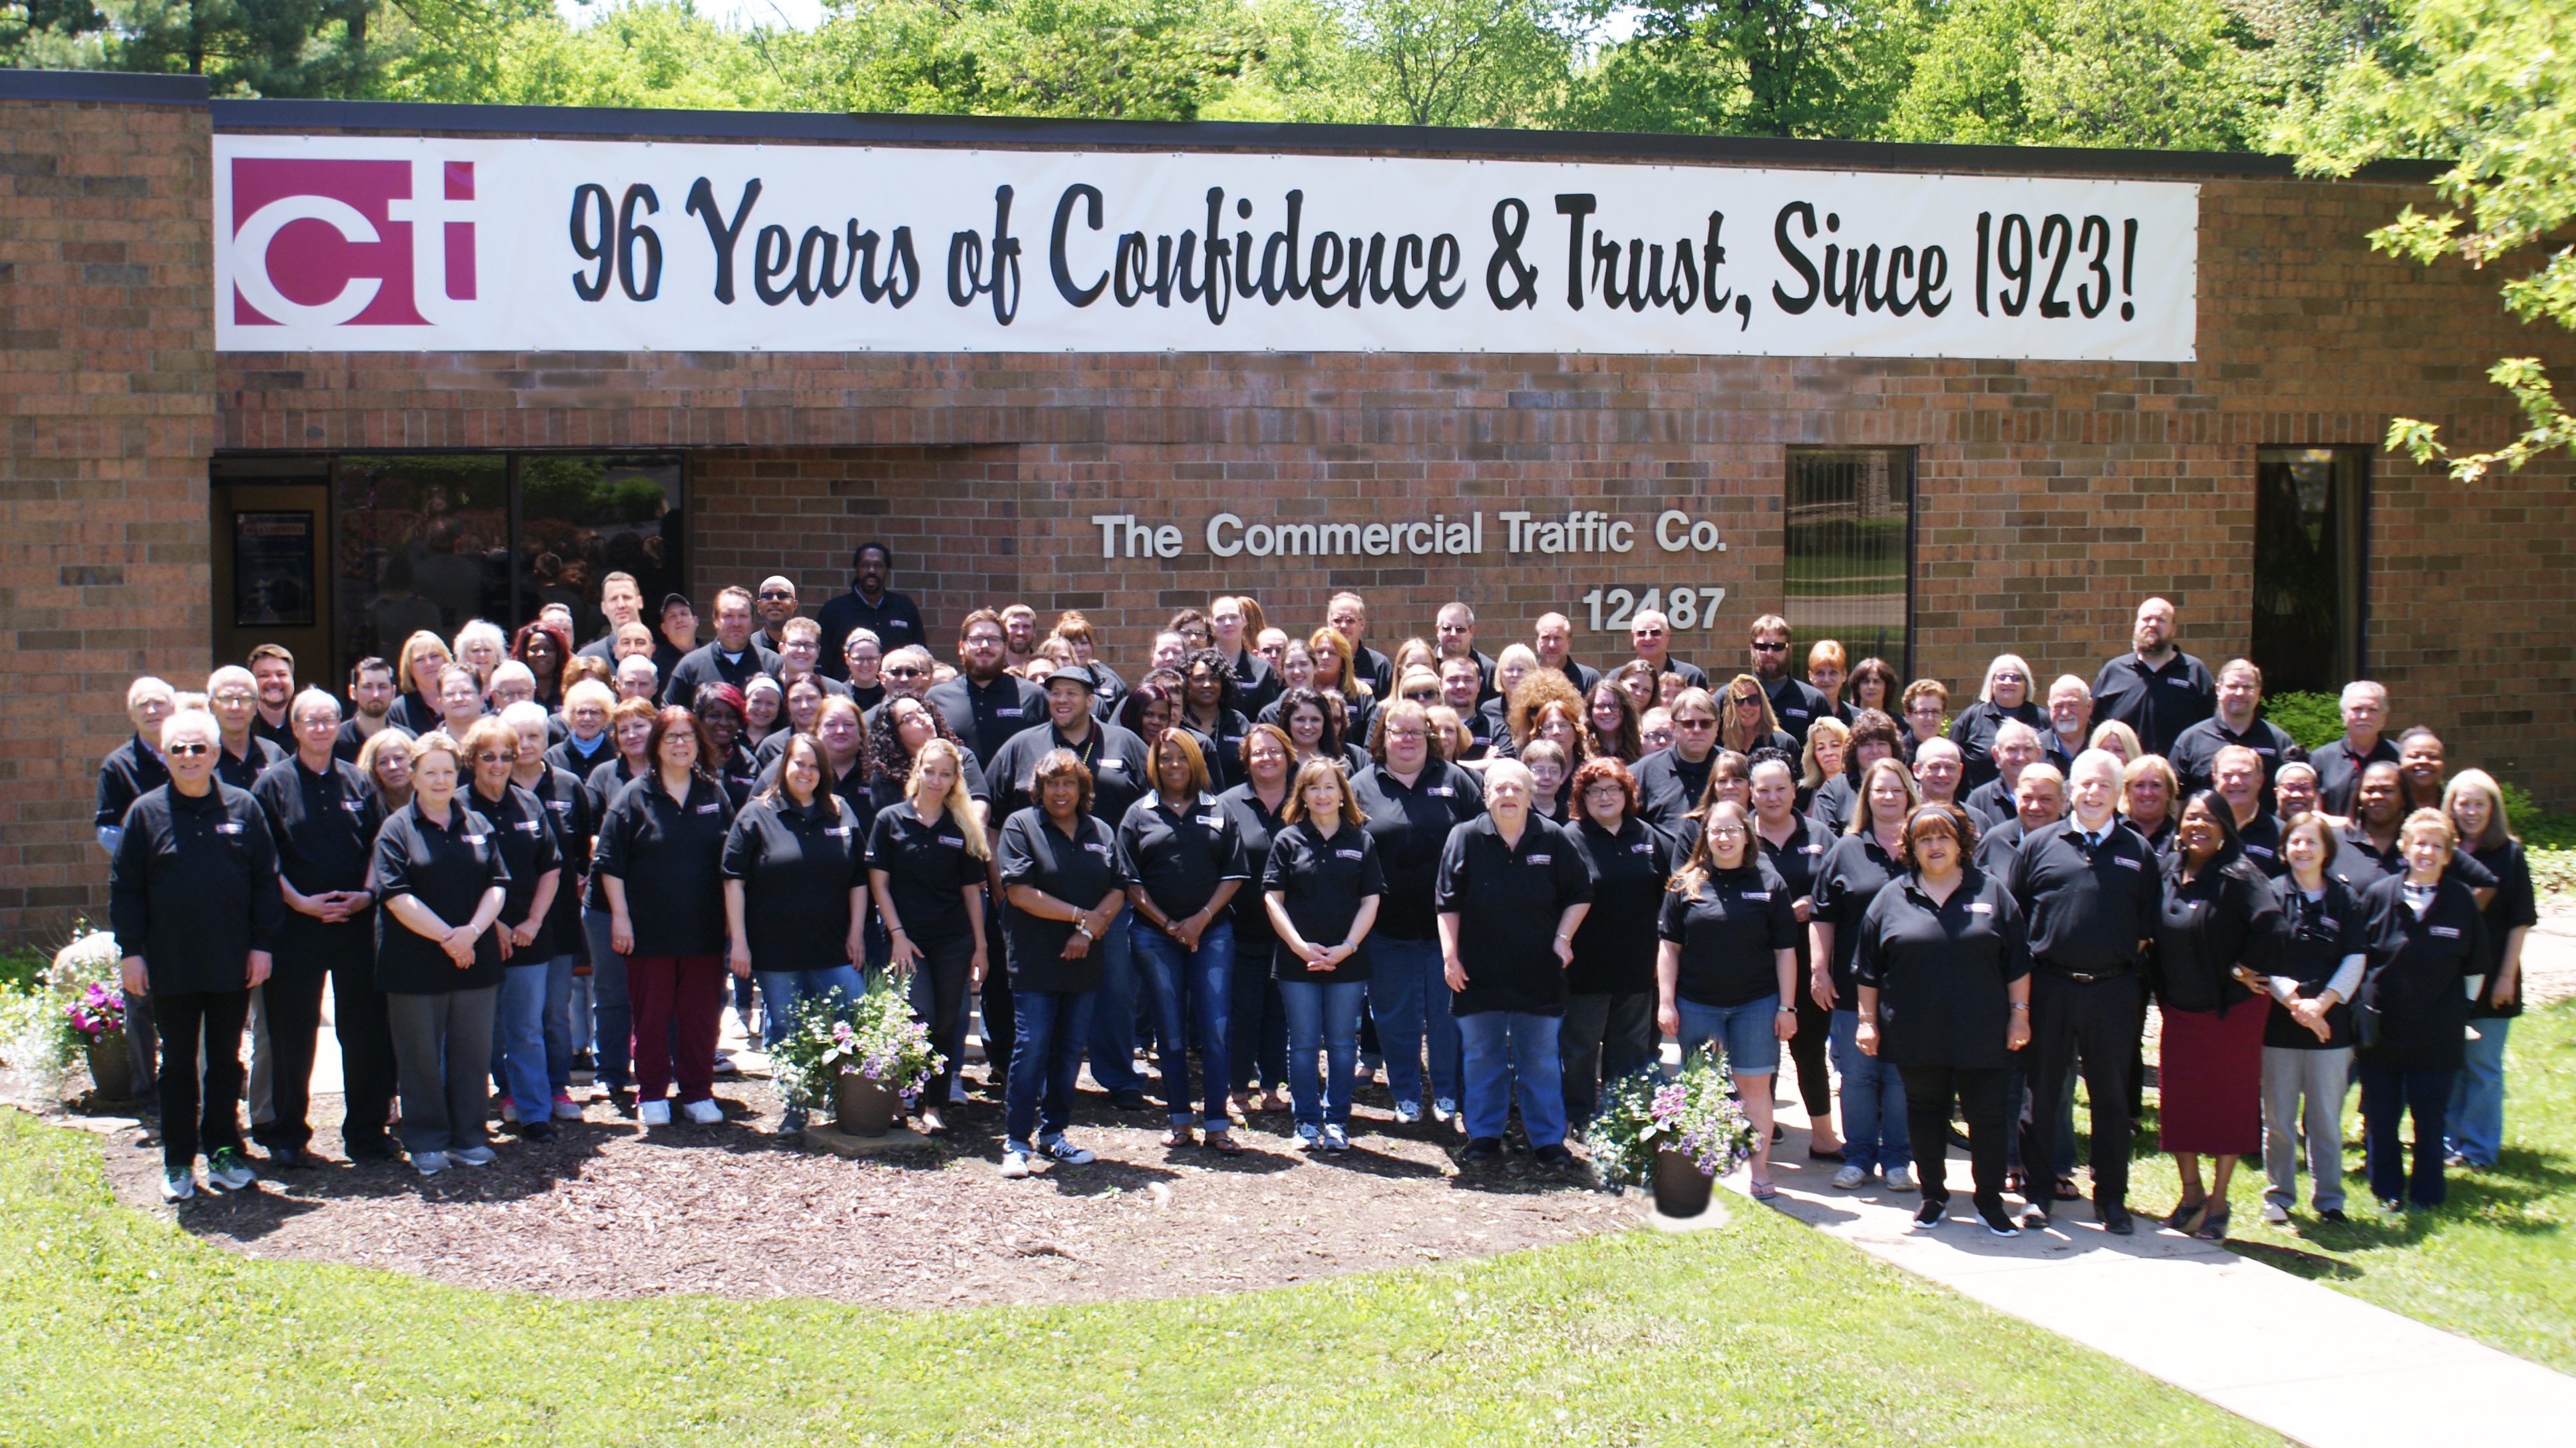 96th Anniversary Company Picture CT Logistics